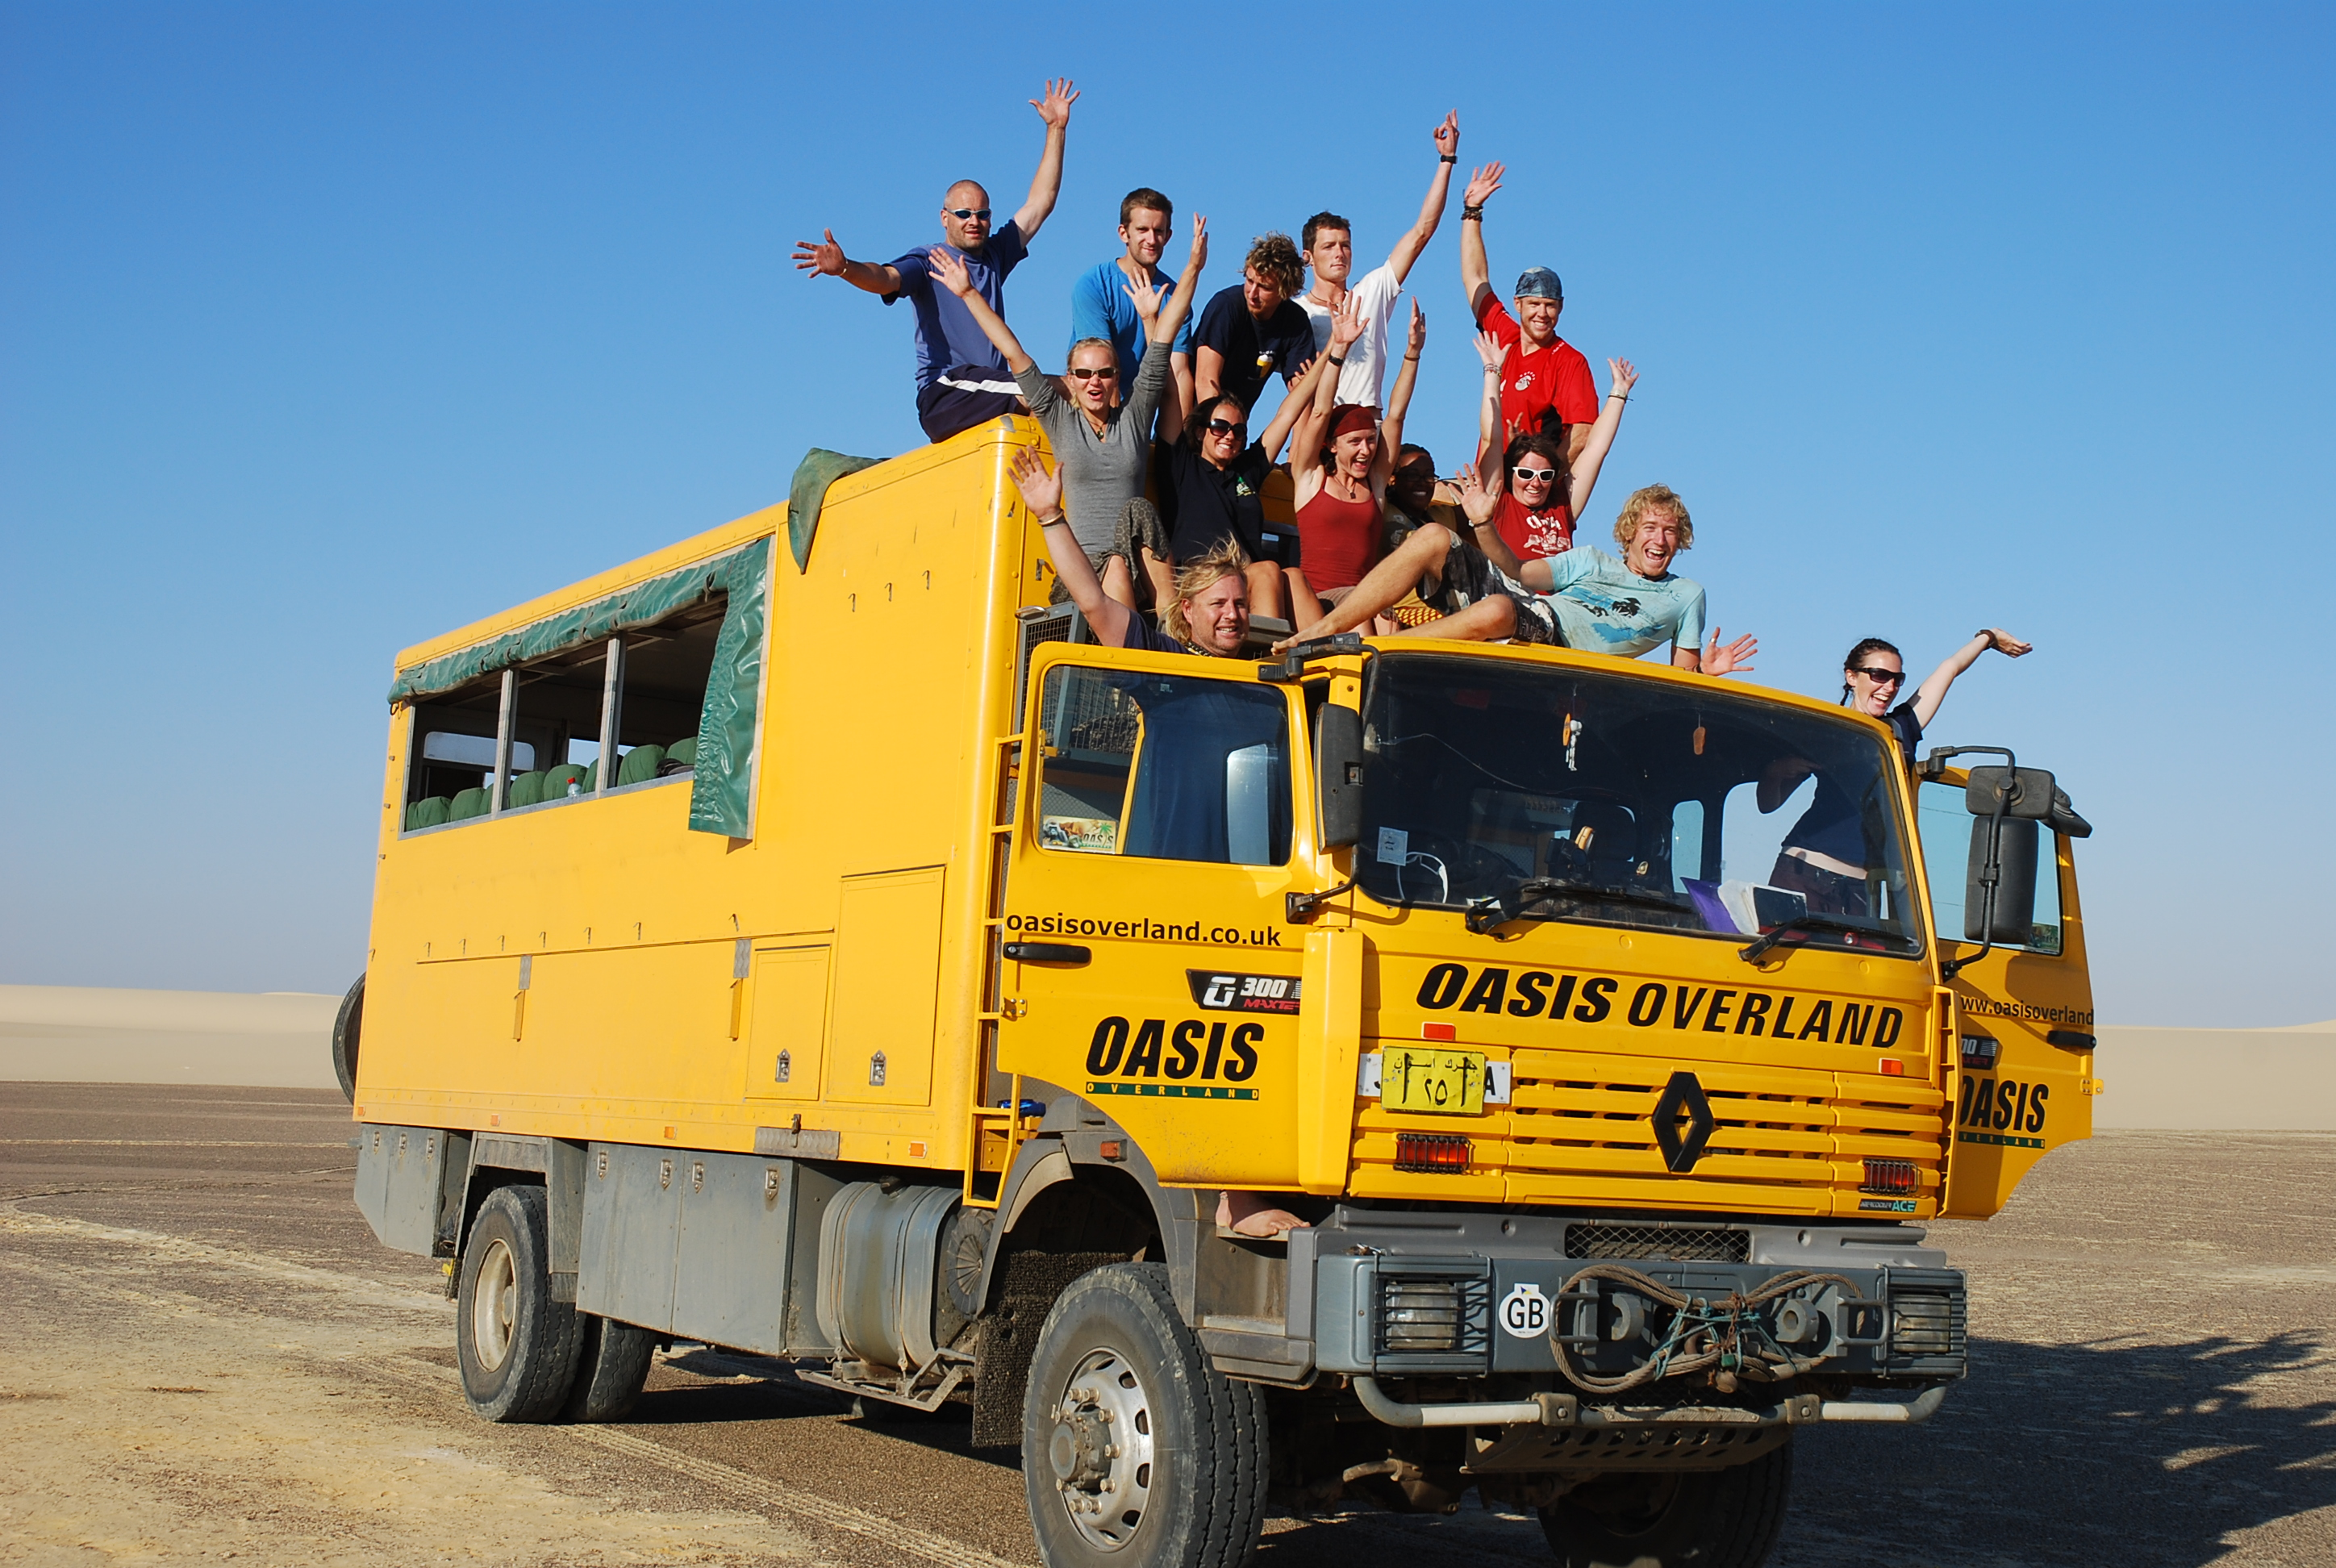 Top 10 Reasons to Book a Tour with Oasis Overland